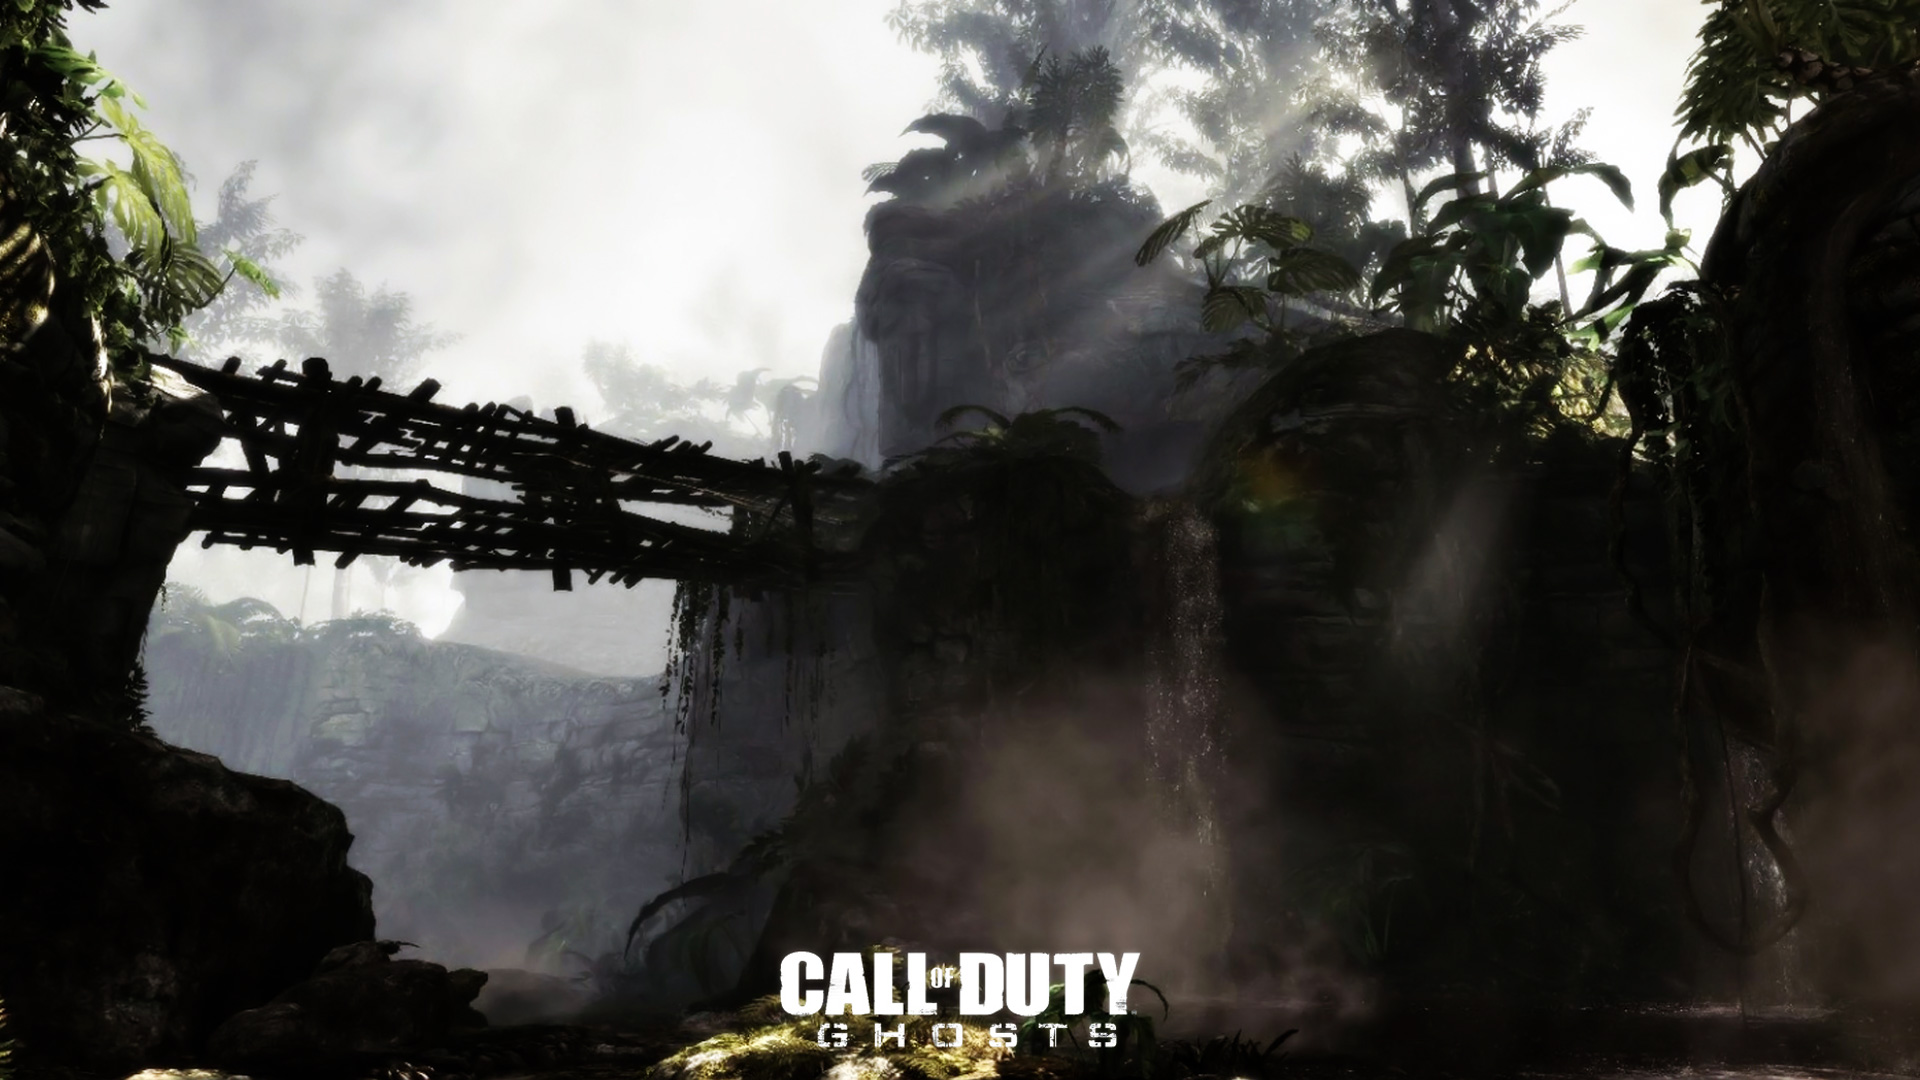 Call Of Duty Ghosts Elite Cod Ghosts Gaming News